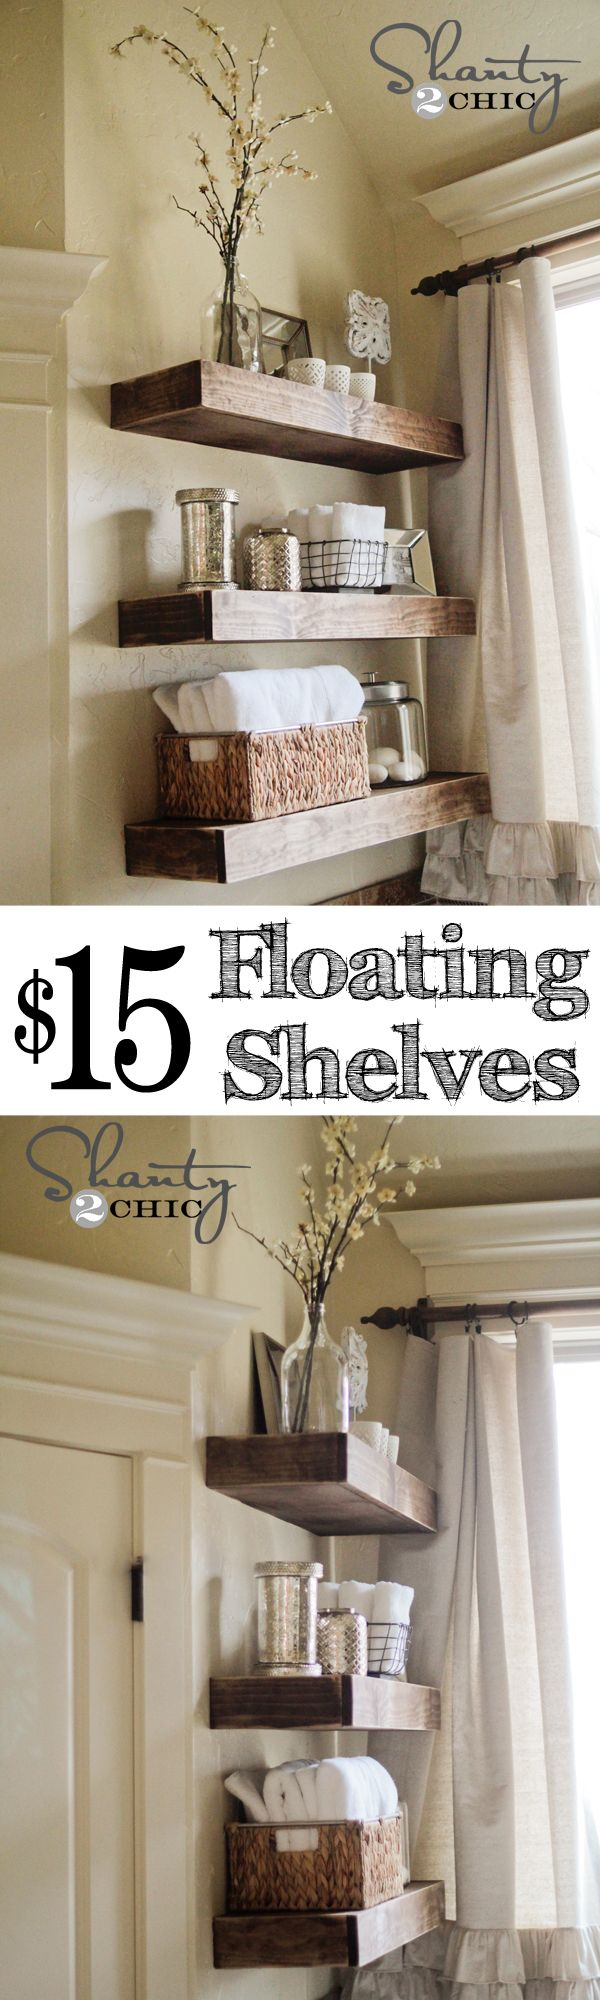 Bathroom diy decorations - Easy Diy Floating Shelves